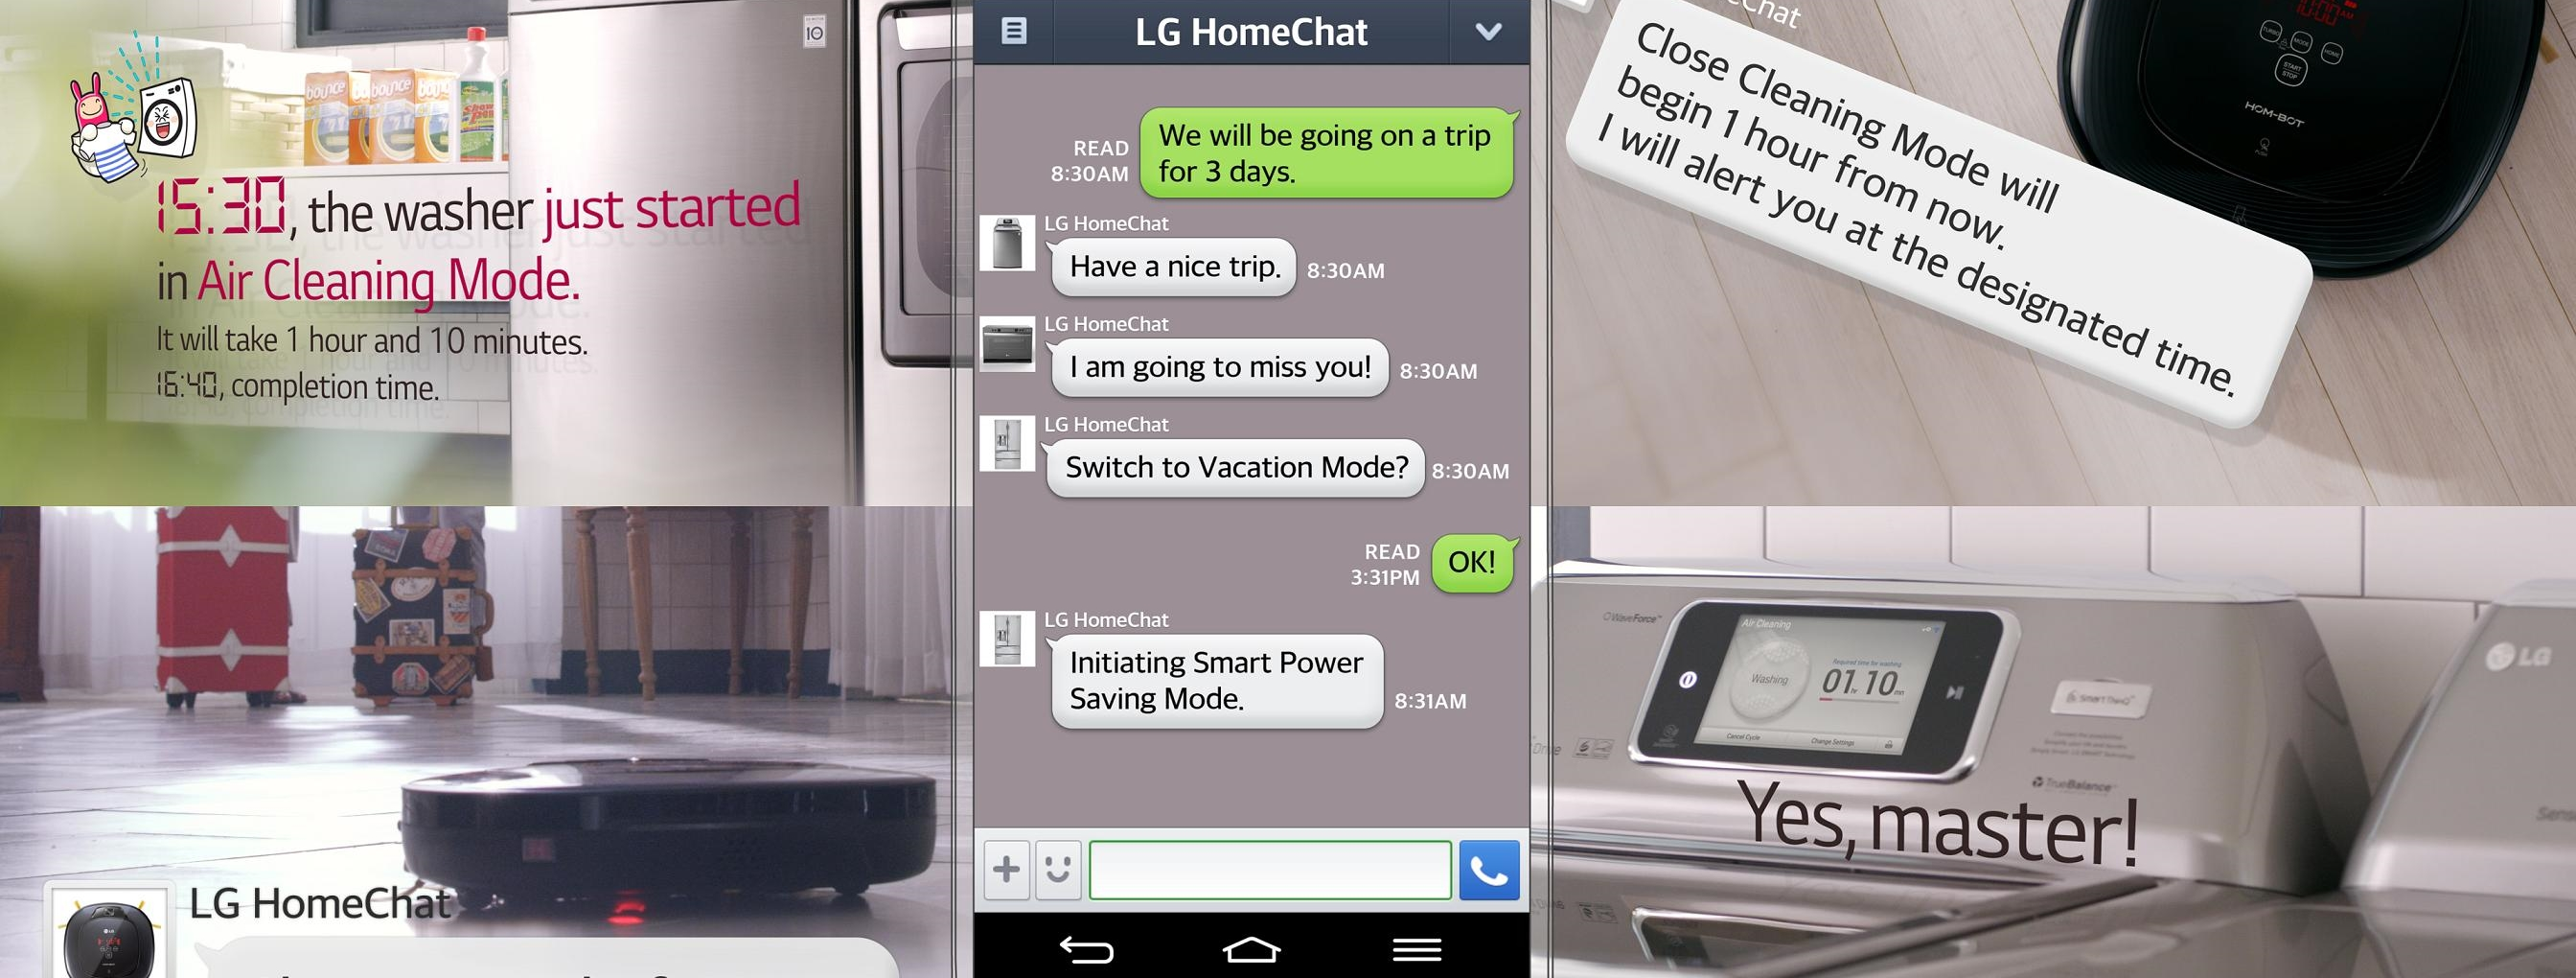 LG's New Fridge, Washing Machine and Oven Can Talk